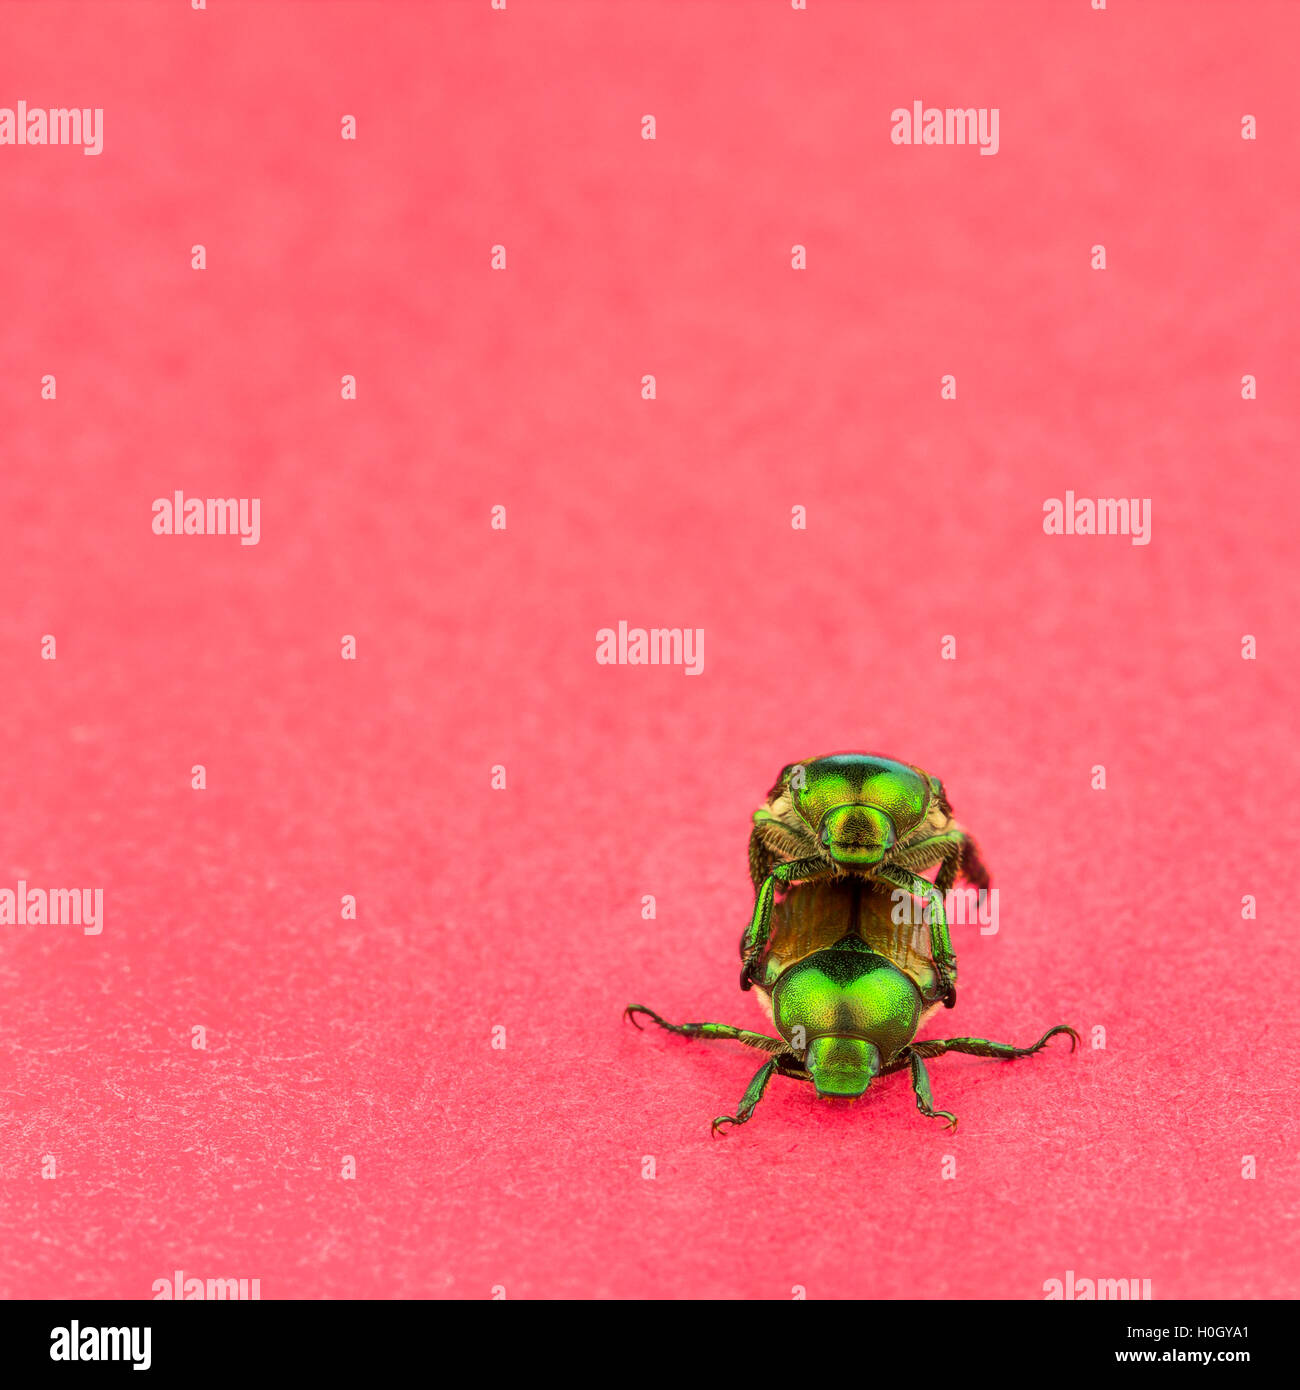 Front close up view of two Japanese Beetles, on a red background. - Stock Image